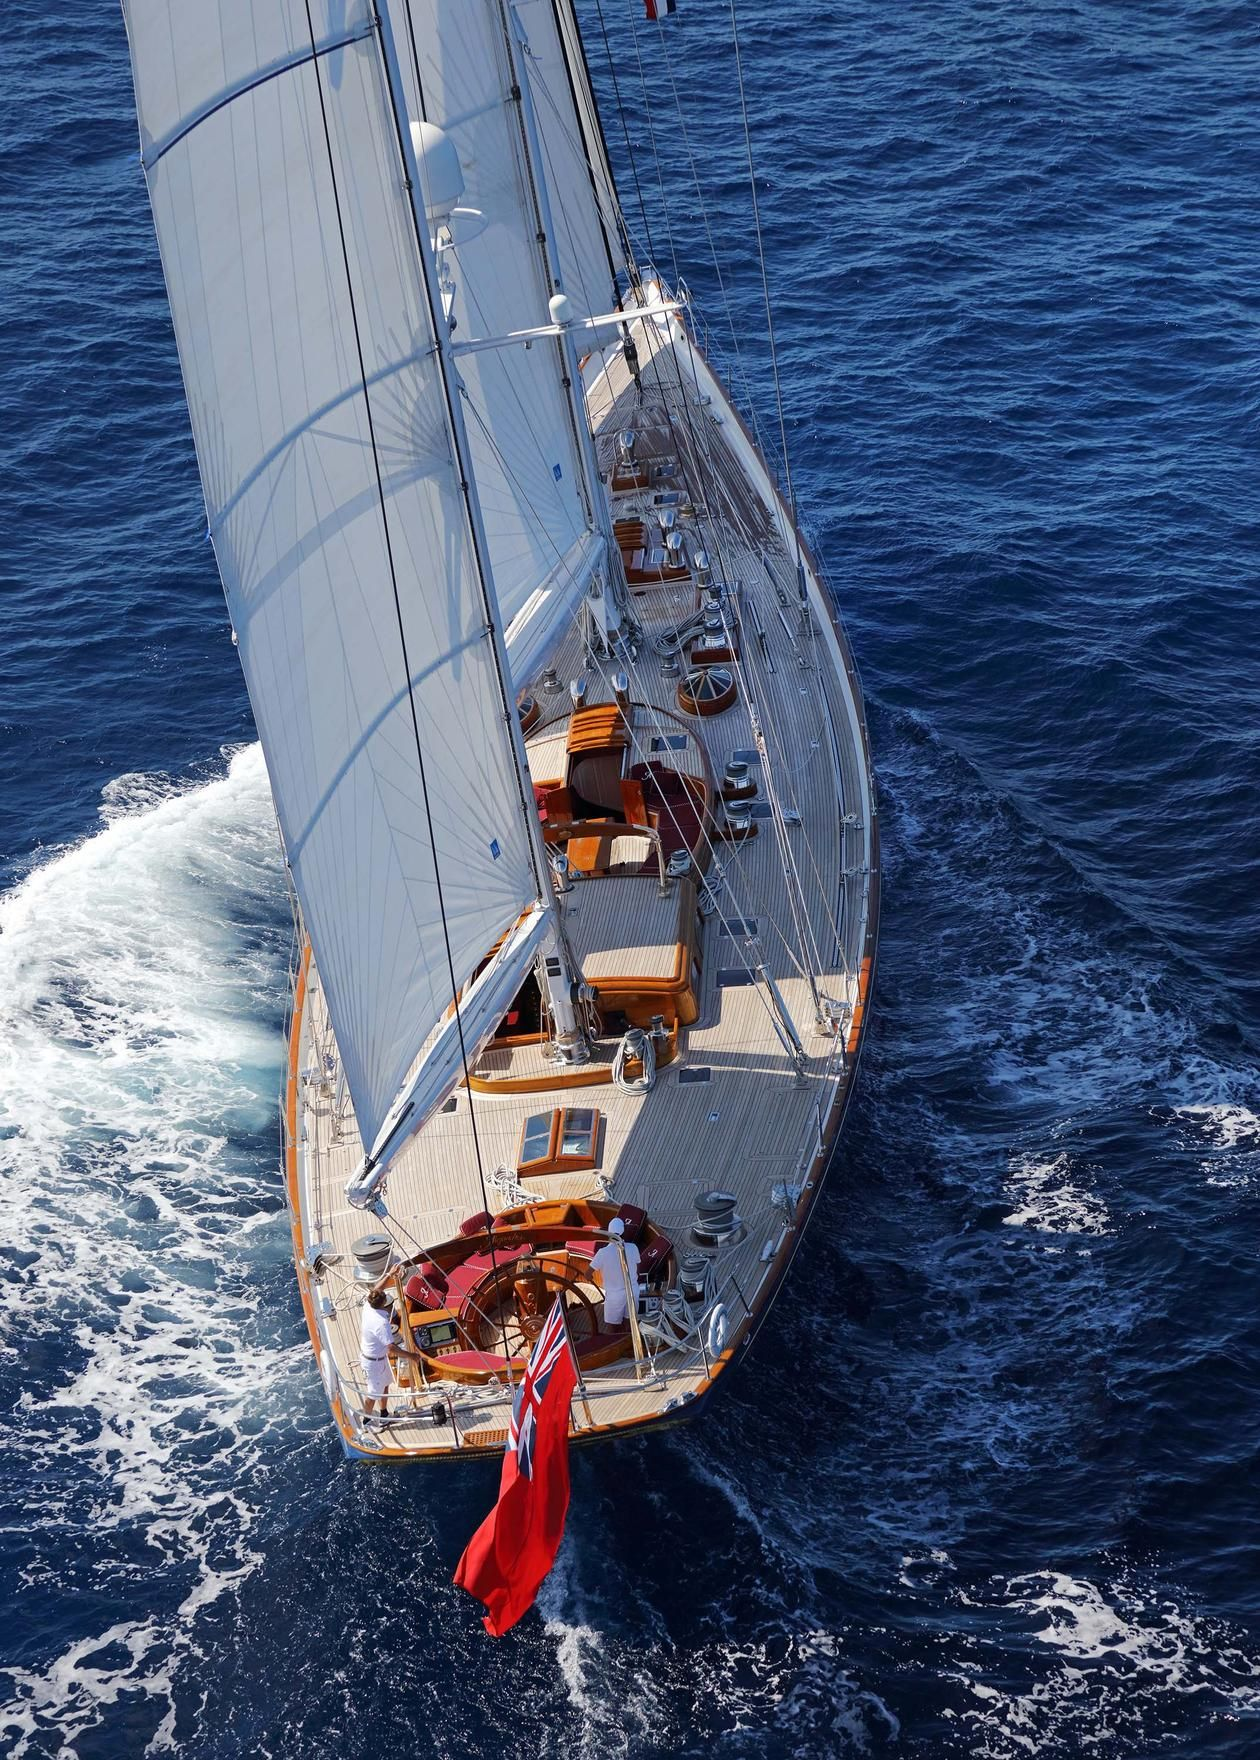 Classic style combines with modern onboard living onboard ALEJANDRA. With an ultra-manoeuvrable hull design, a responsive sailing system and a large sail plan, she performs even in the lightest winds. ALEJANDRA's regatta-winning heritage includes Maxi and classic yacht regattas. She also has transatlantic cruising capability under power. Designed to an exquisite level of attention to detail by Bruce King, Cuban mahogany interiors are made with custom skylights to bring sea breezes inside. On…